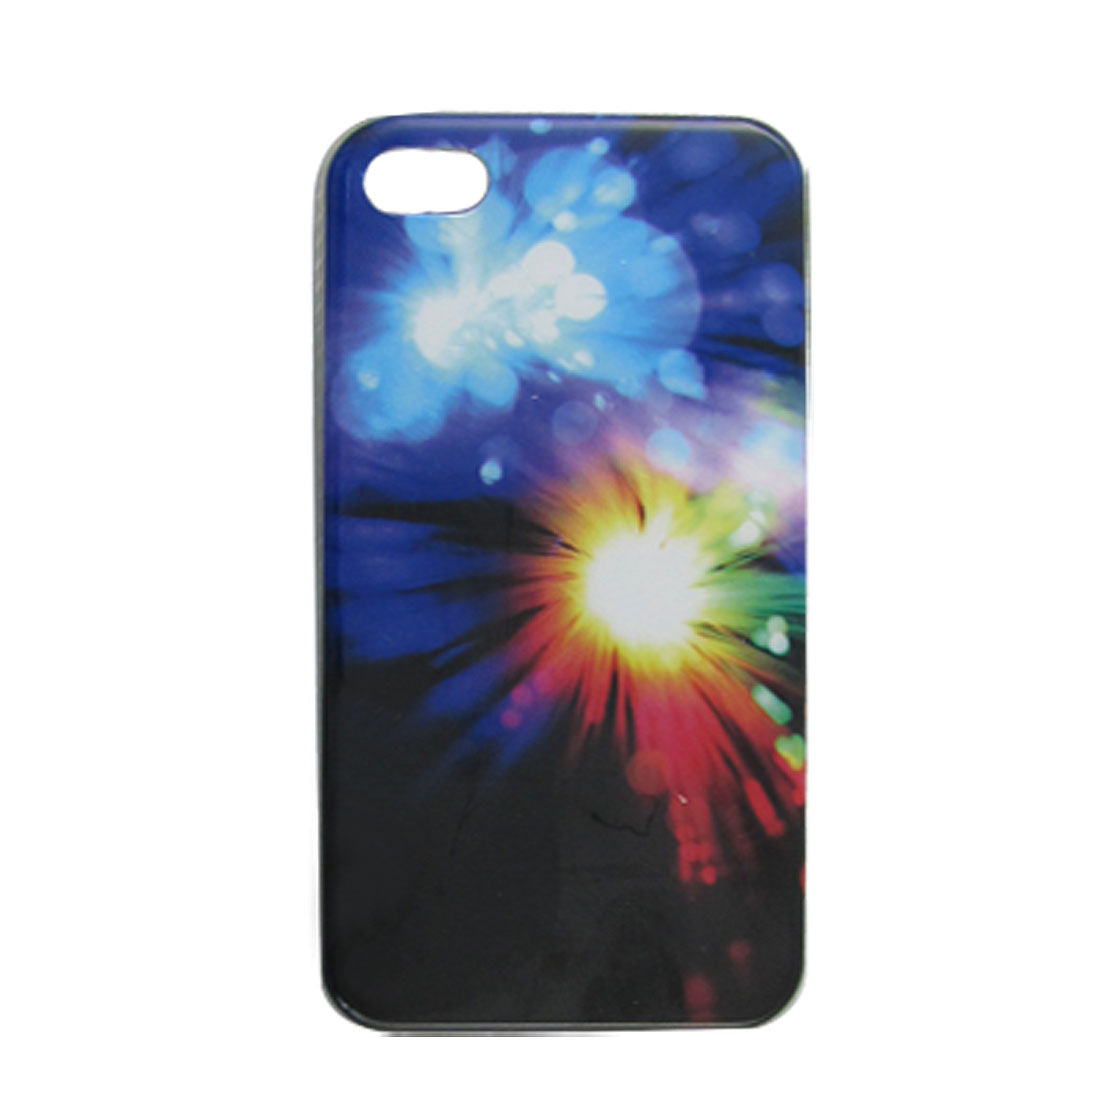 Hard Plastic IMD Sunshine Pattern Back Case for iPhone 4 4G 4S